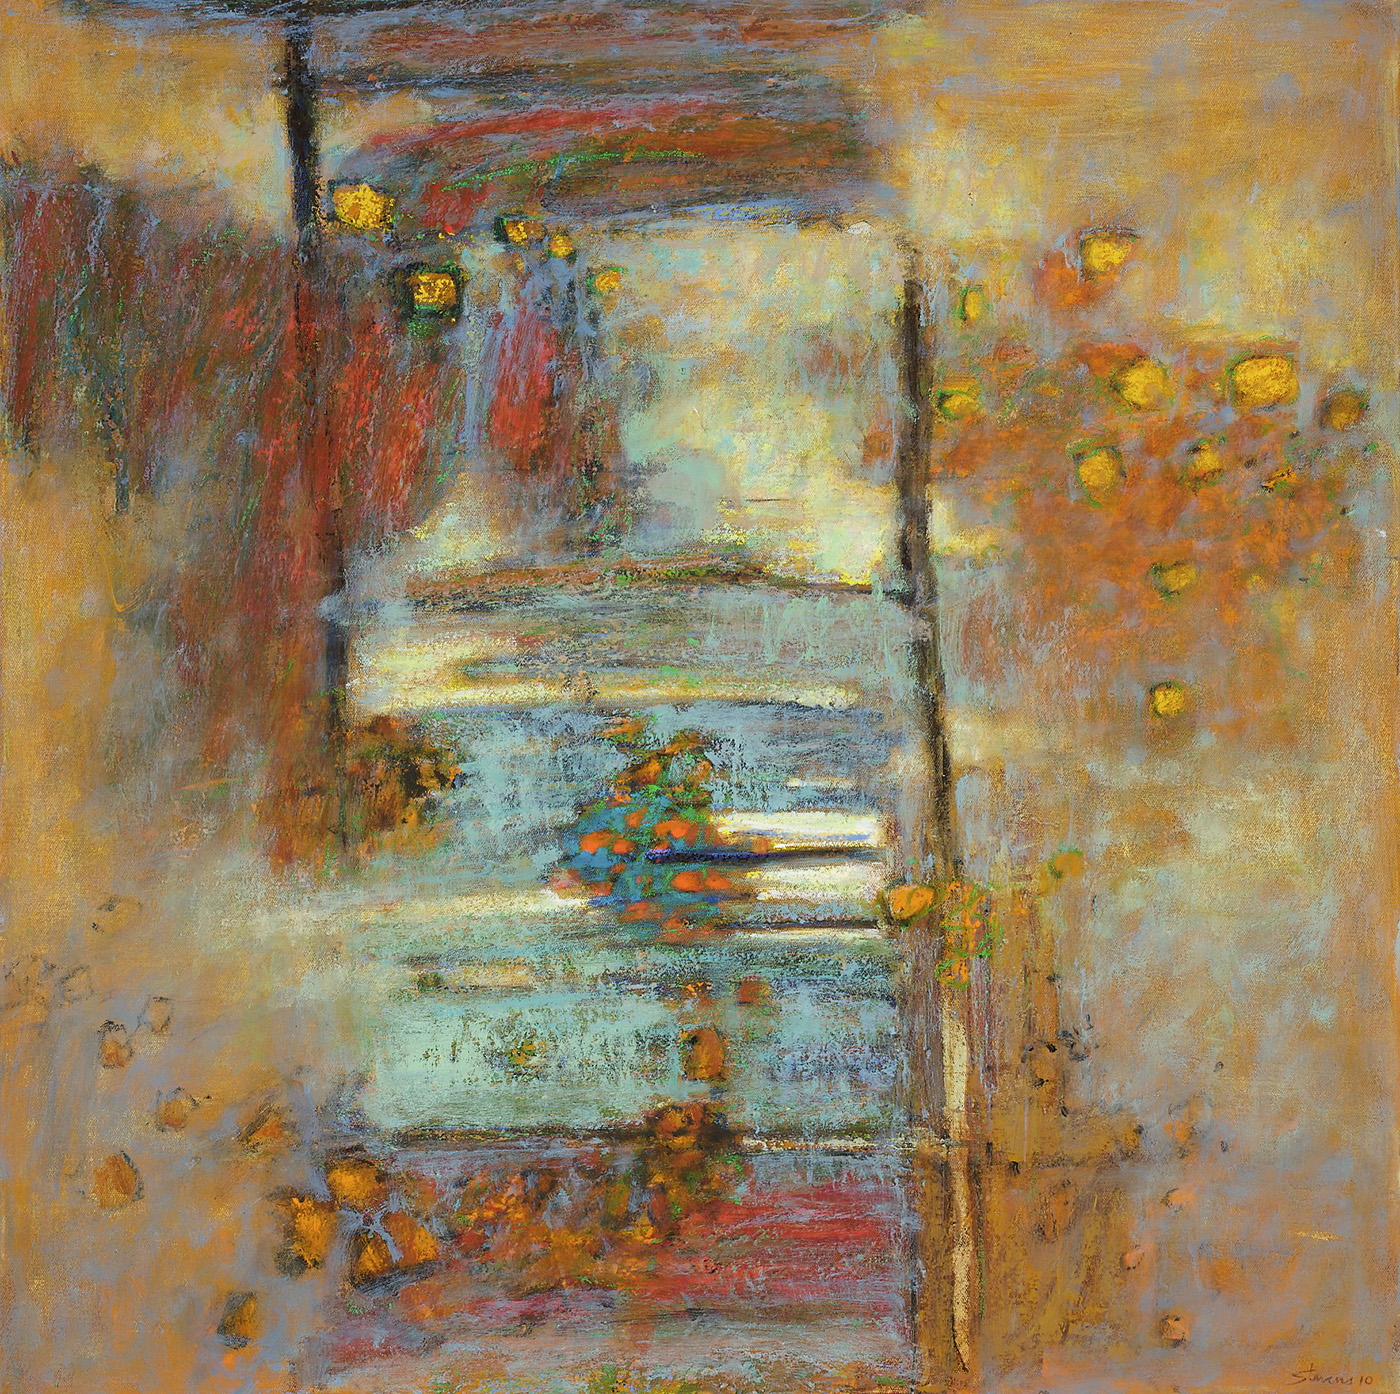 Sonic Equilibrium   | oil on canvas | 30 x 30"